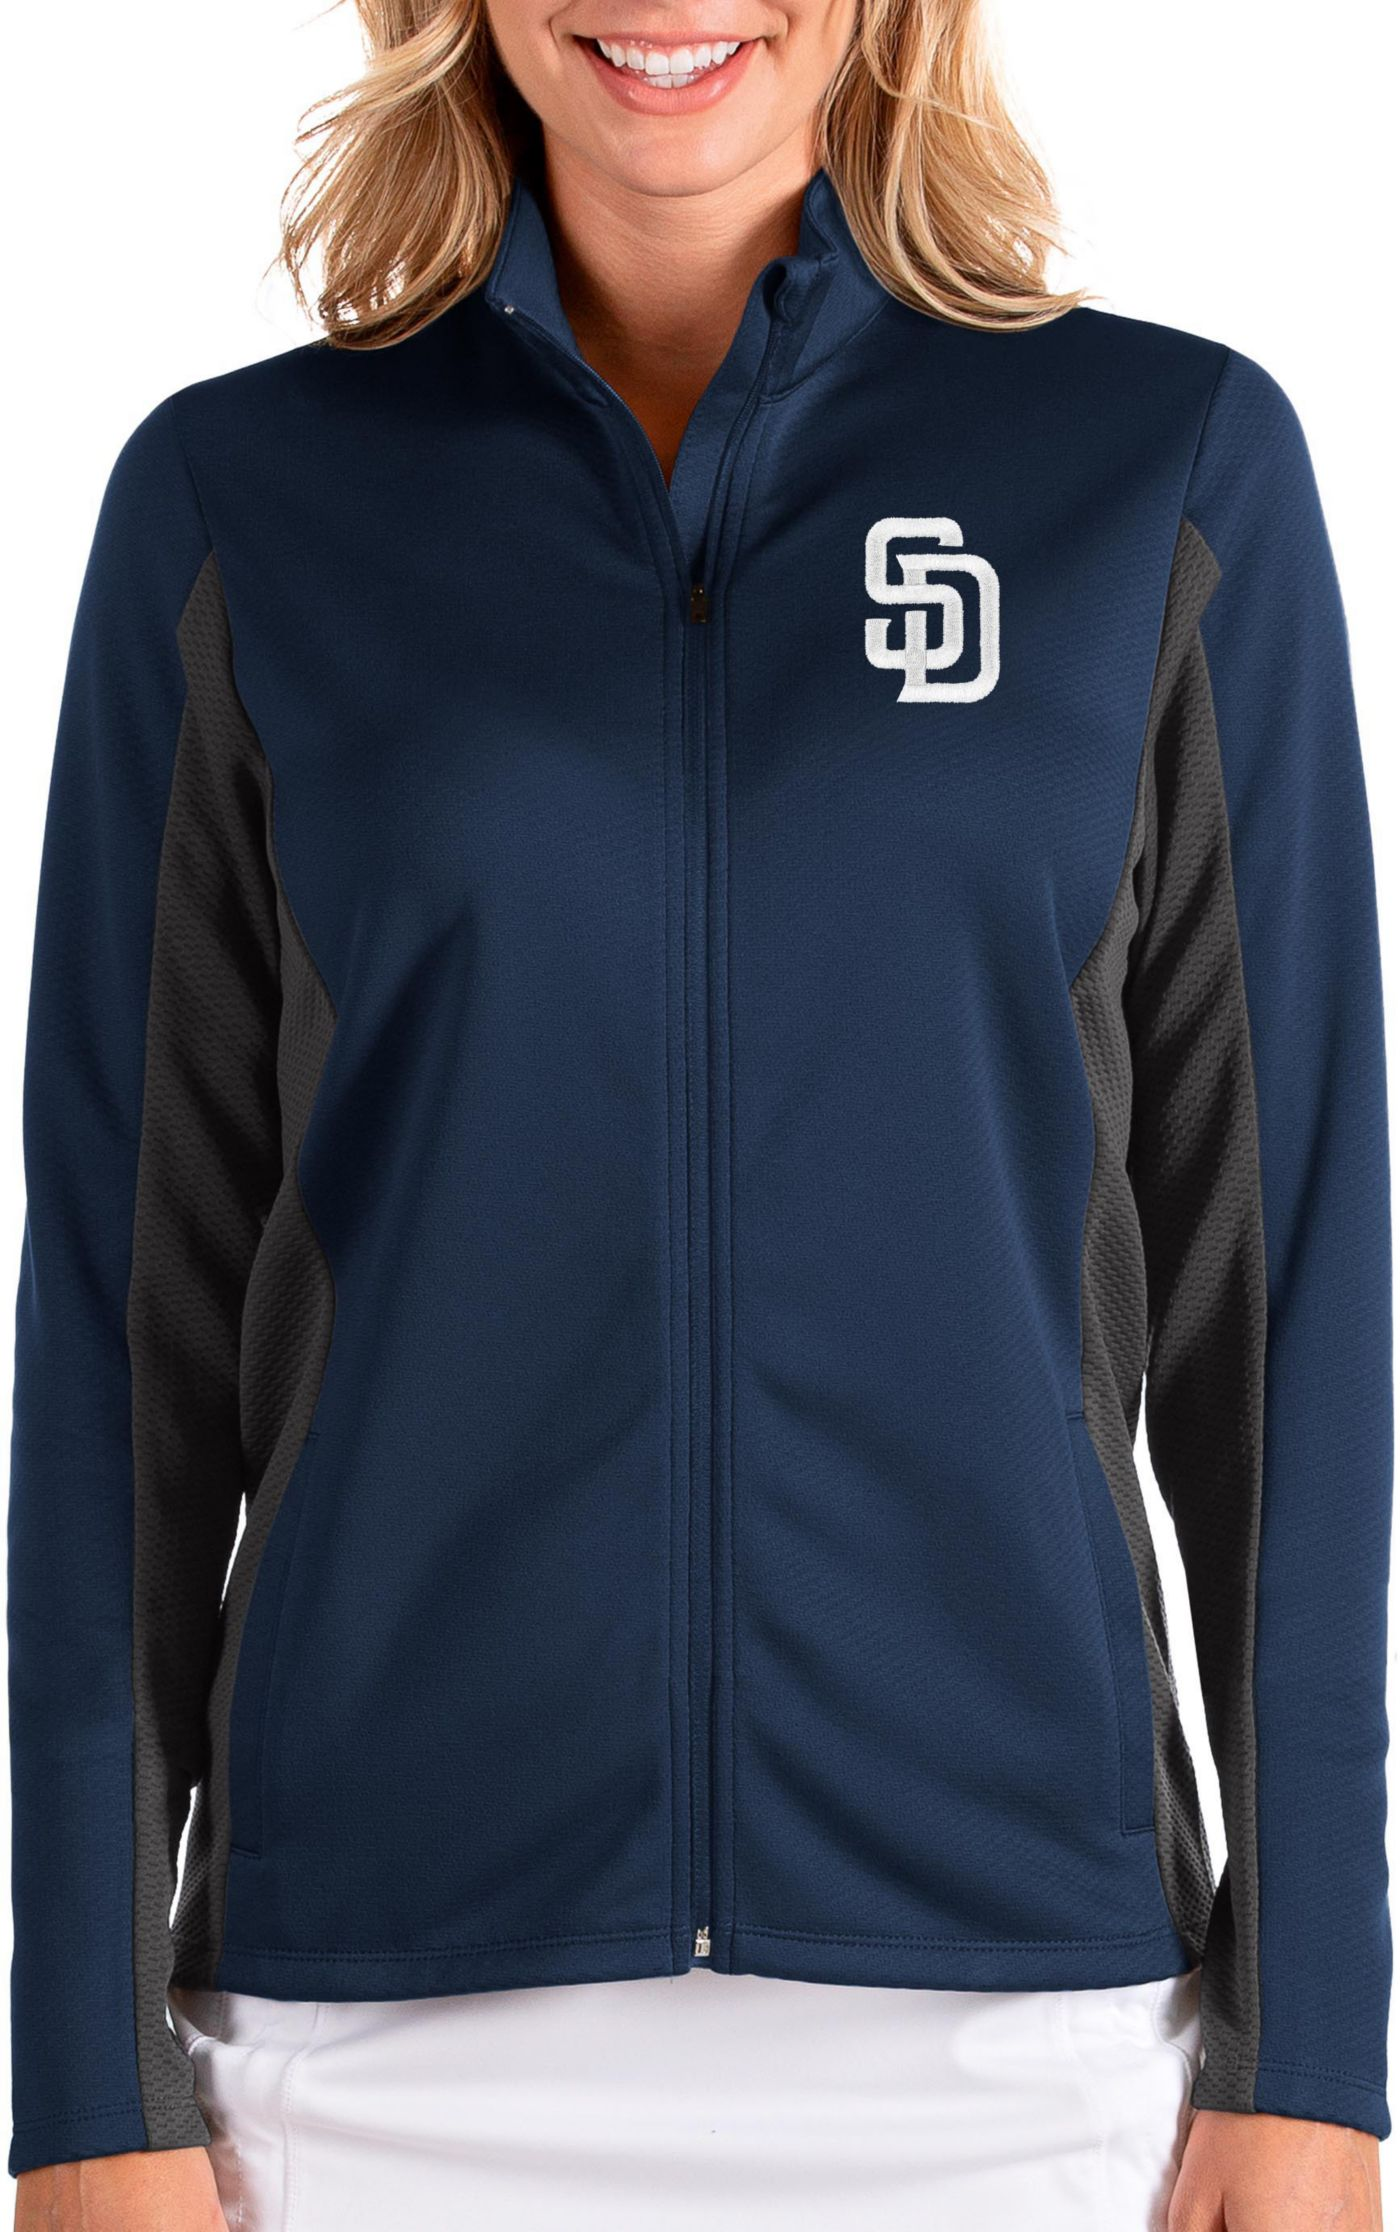 Antigua Women's San Diego Padres Navy Passage Full-Zip Jacket